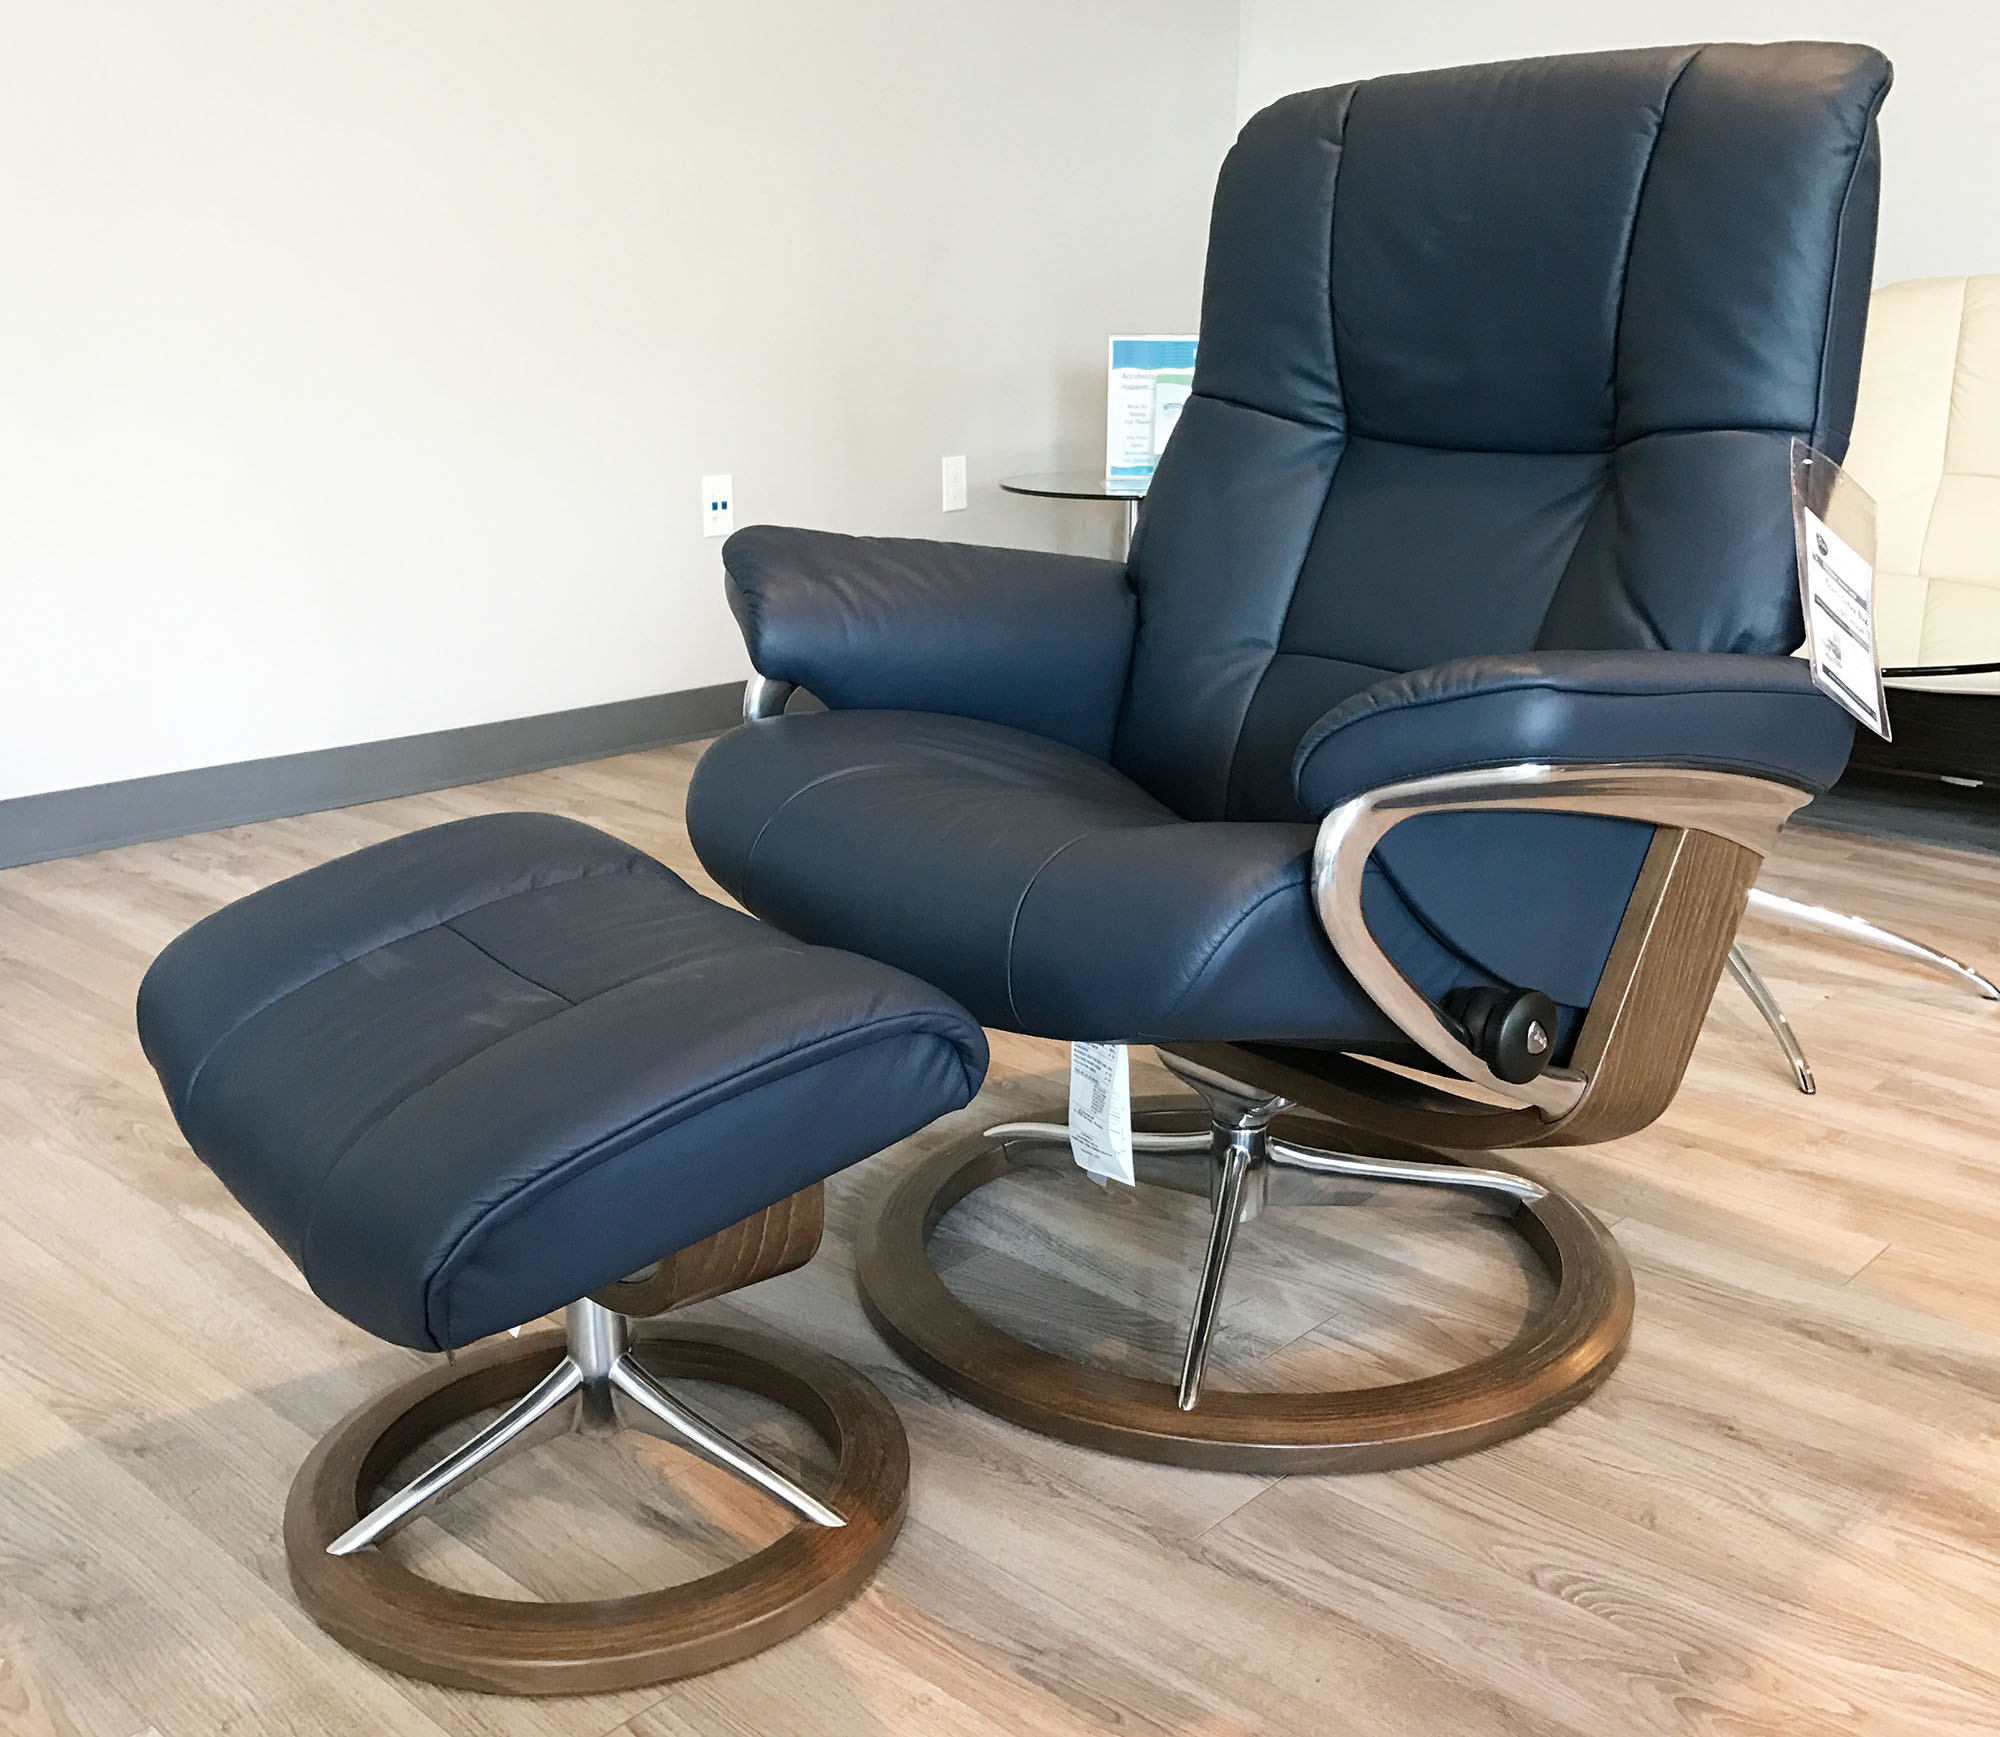 Stressless Magic Signature Sessel Stressless Stressless Consul Leather Recliner Chairs Stressless